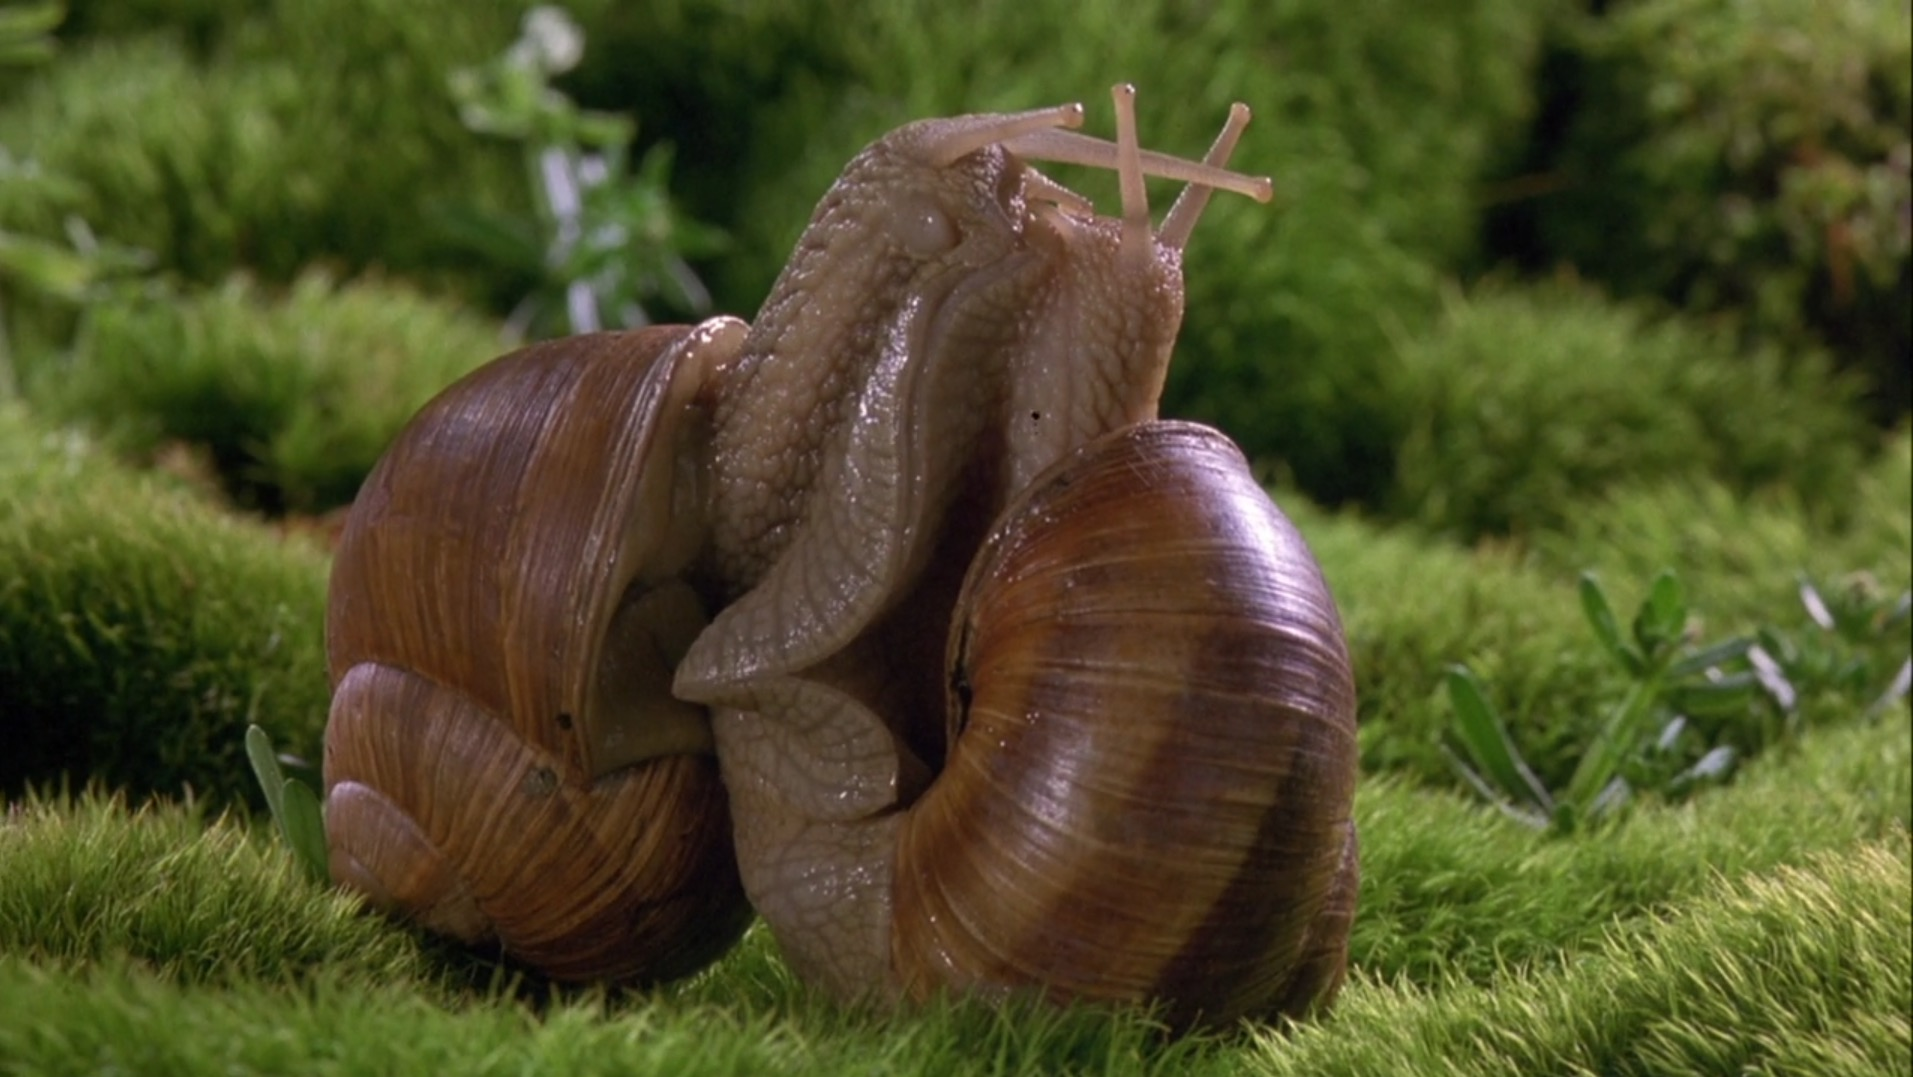 Two large snails pictured up close in grass, with their bodies pressed against each other.